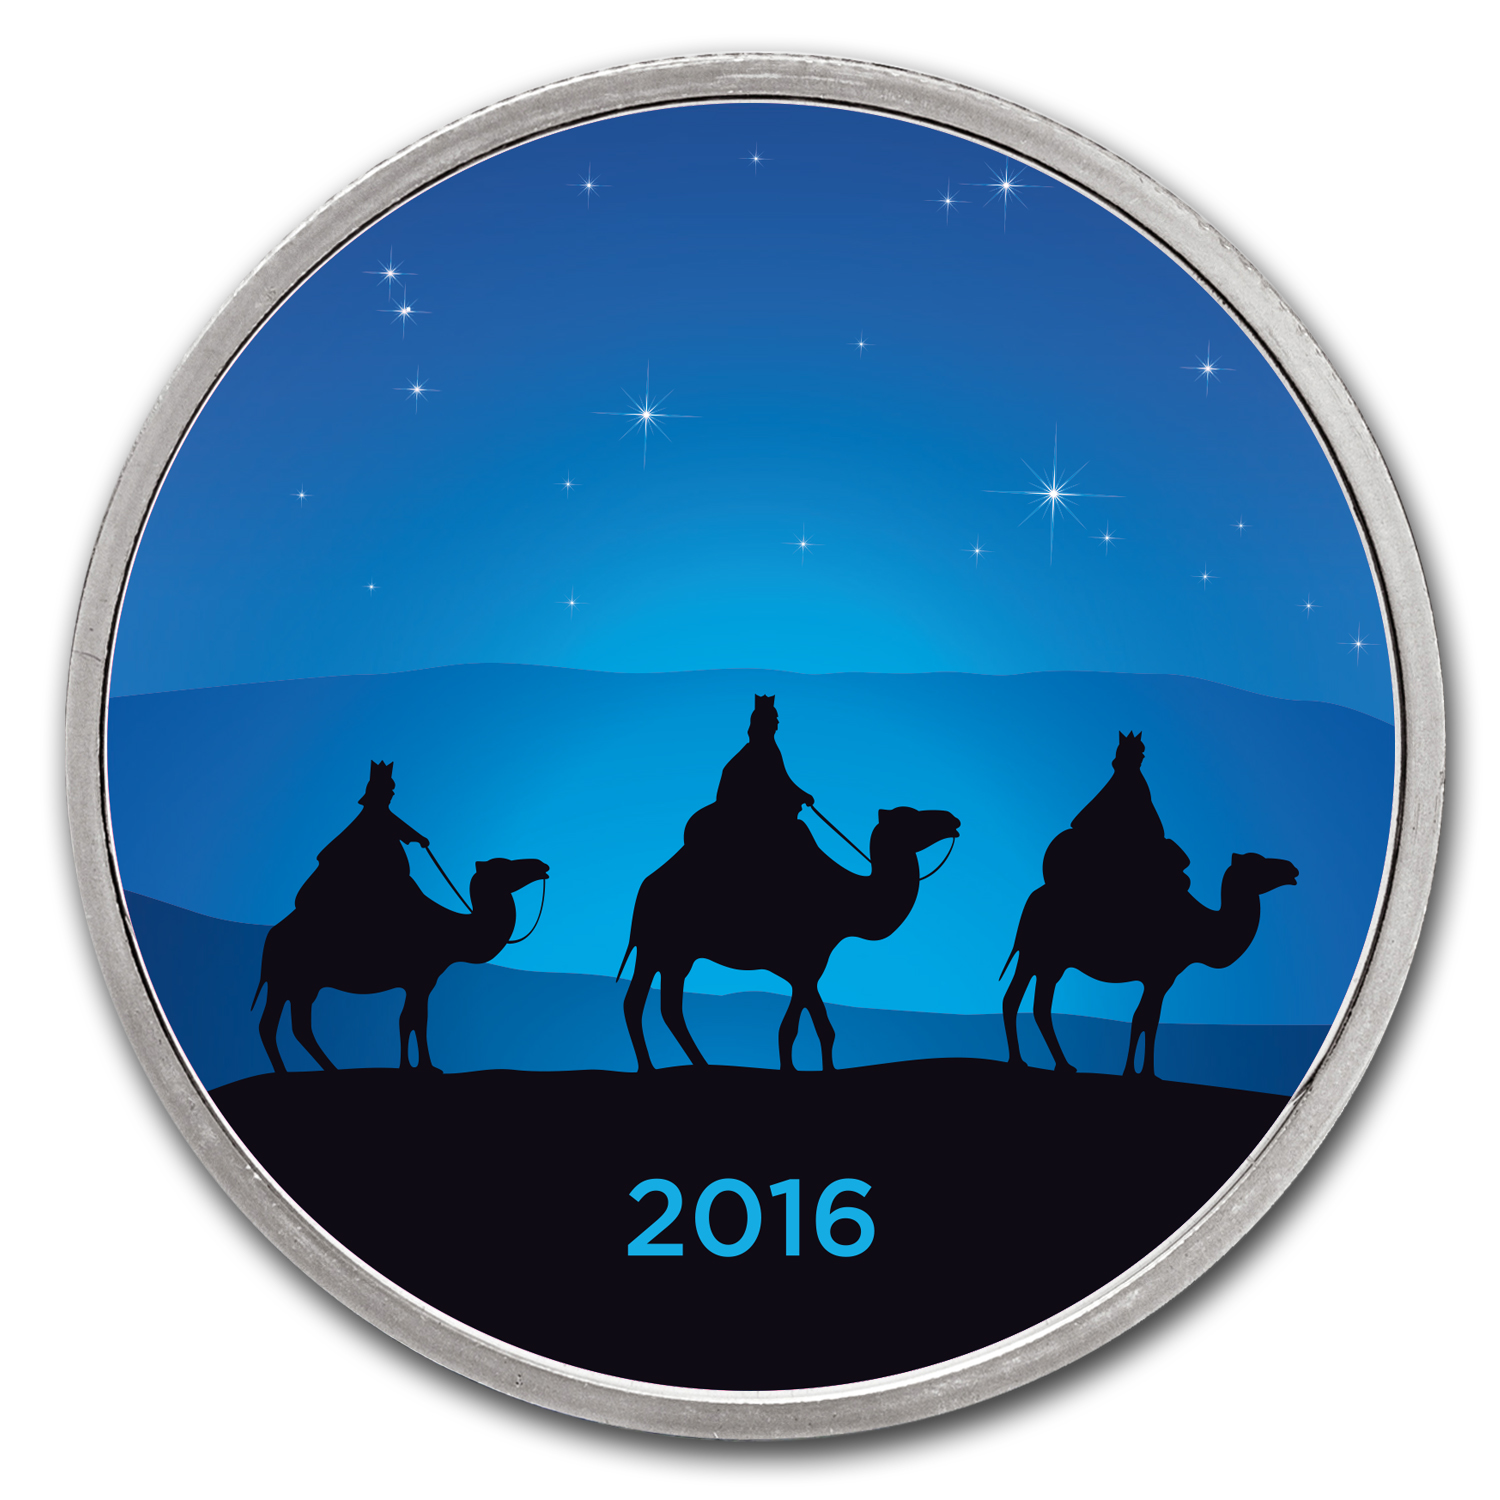 1 oz Silver Colorized Round - APMEX (3 Wise Men - Sapphire Night)